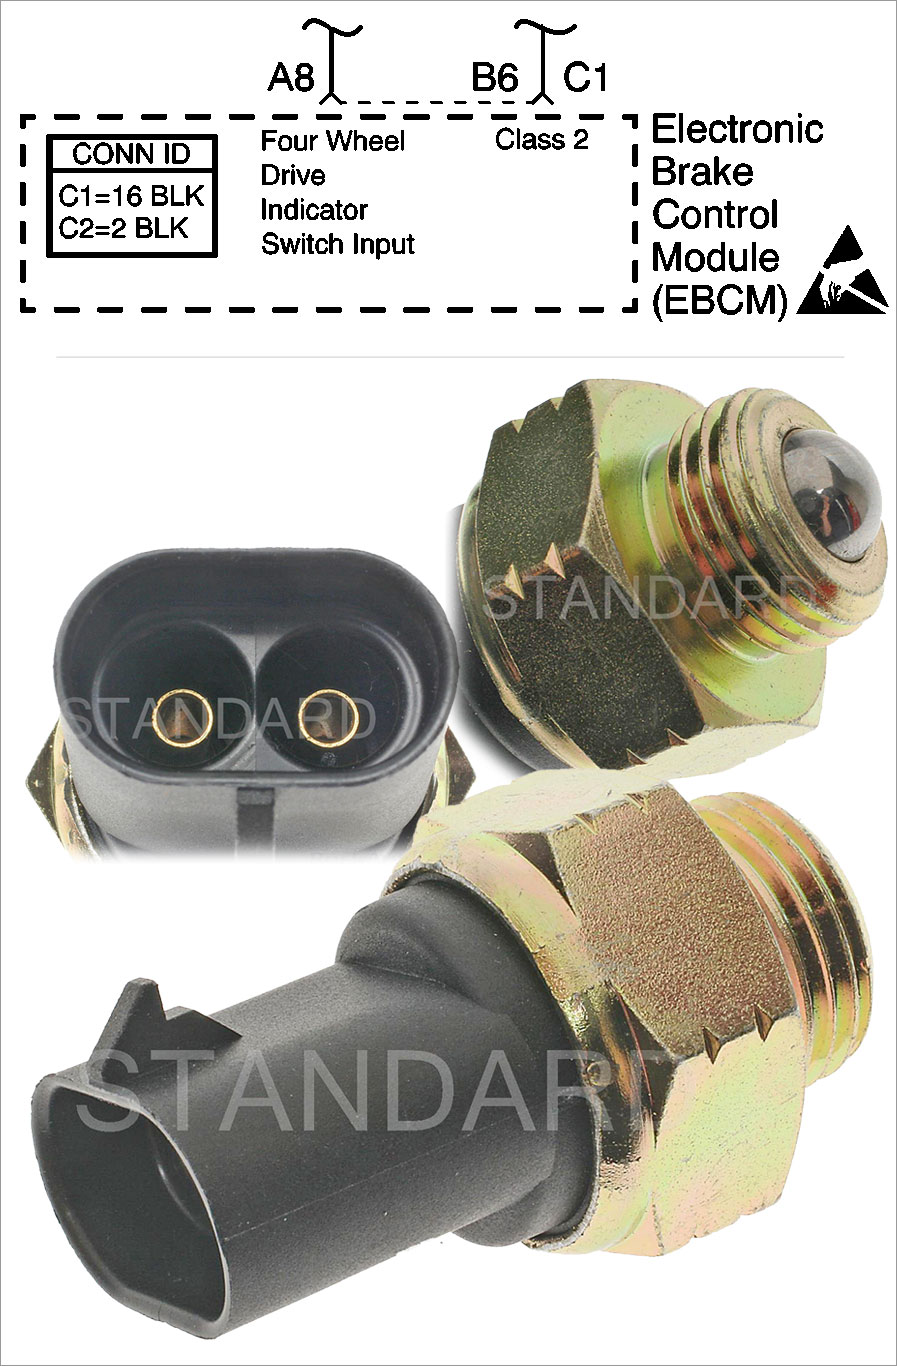 Standard Motor Products 4WD Indicator Switch used on 1983-2005 GM vehicles